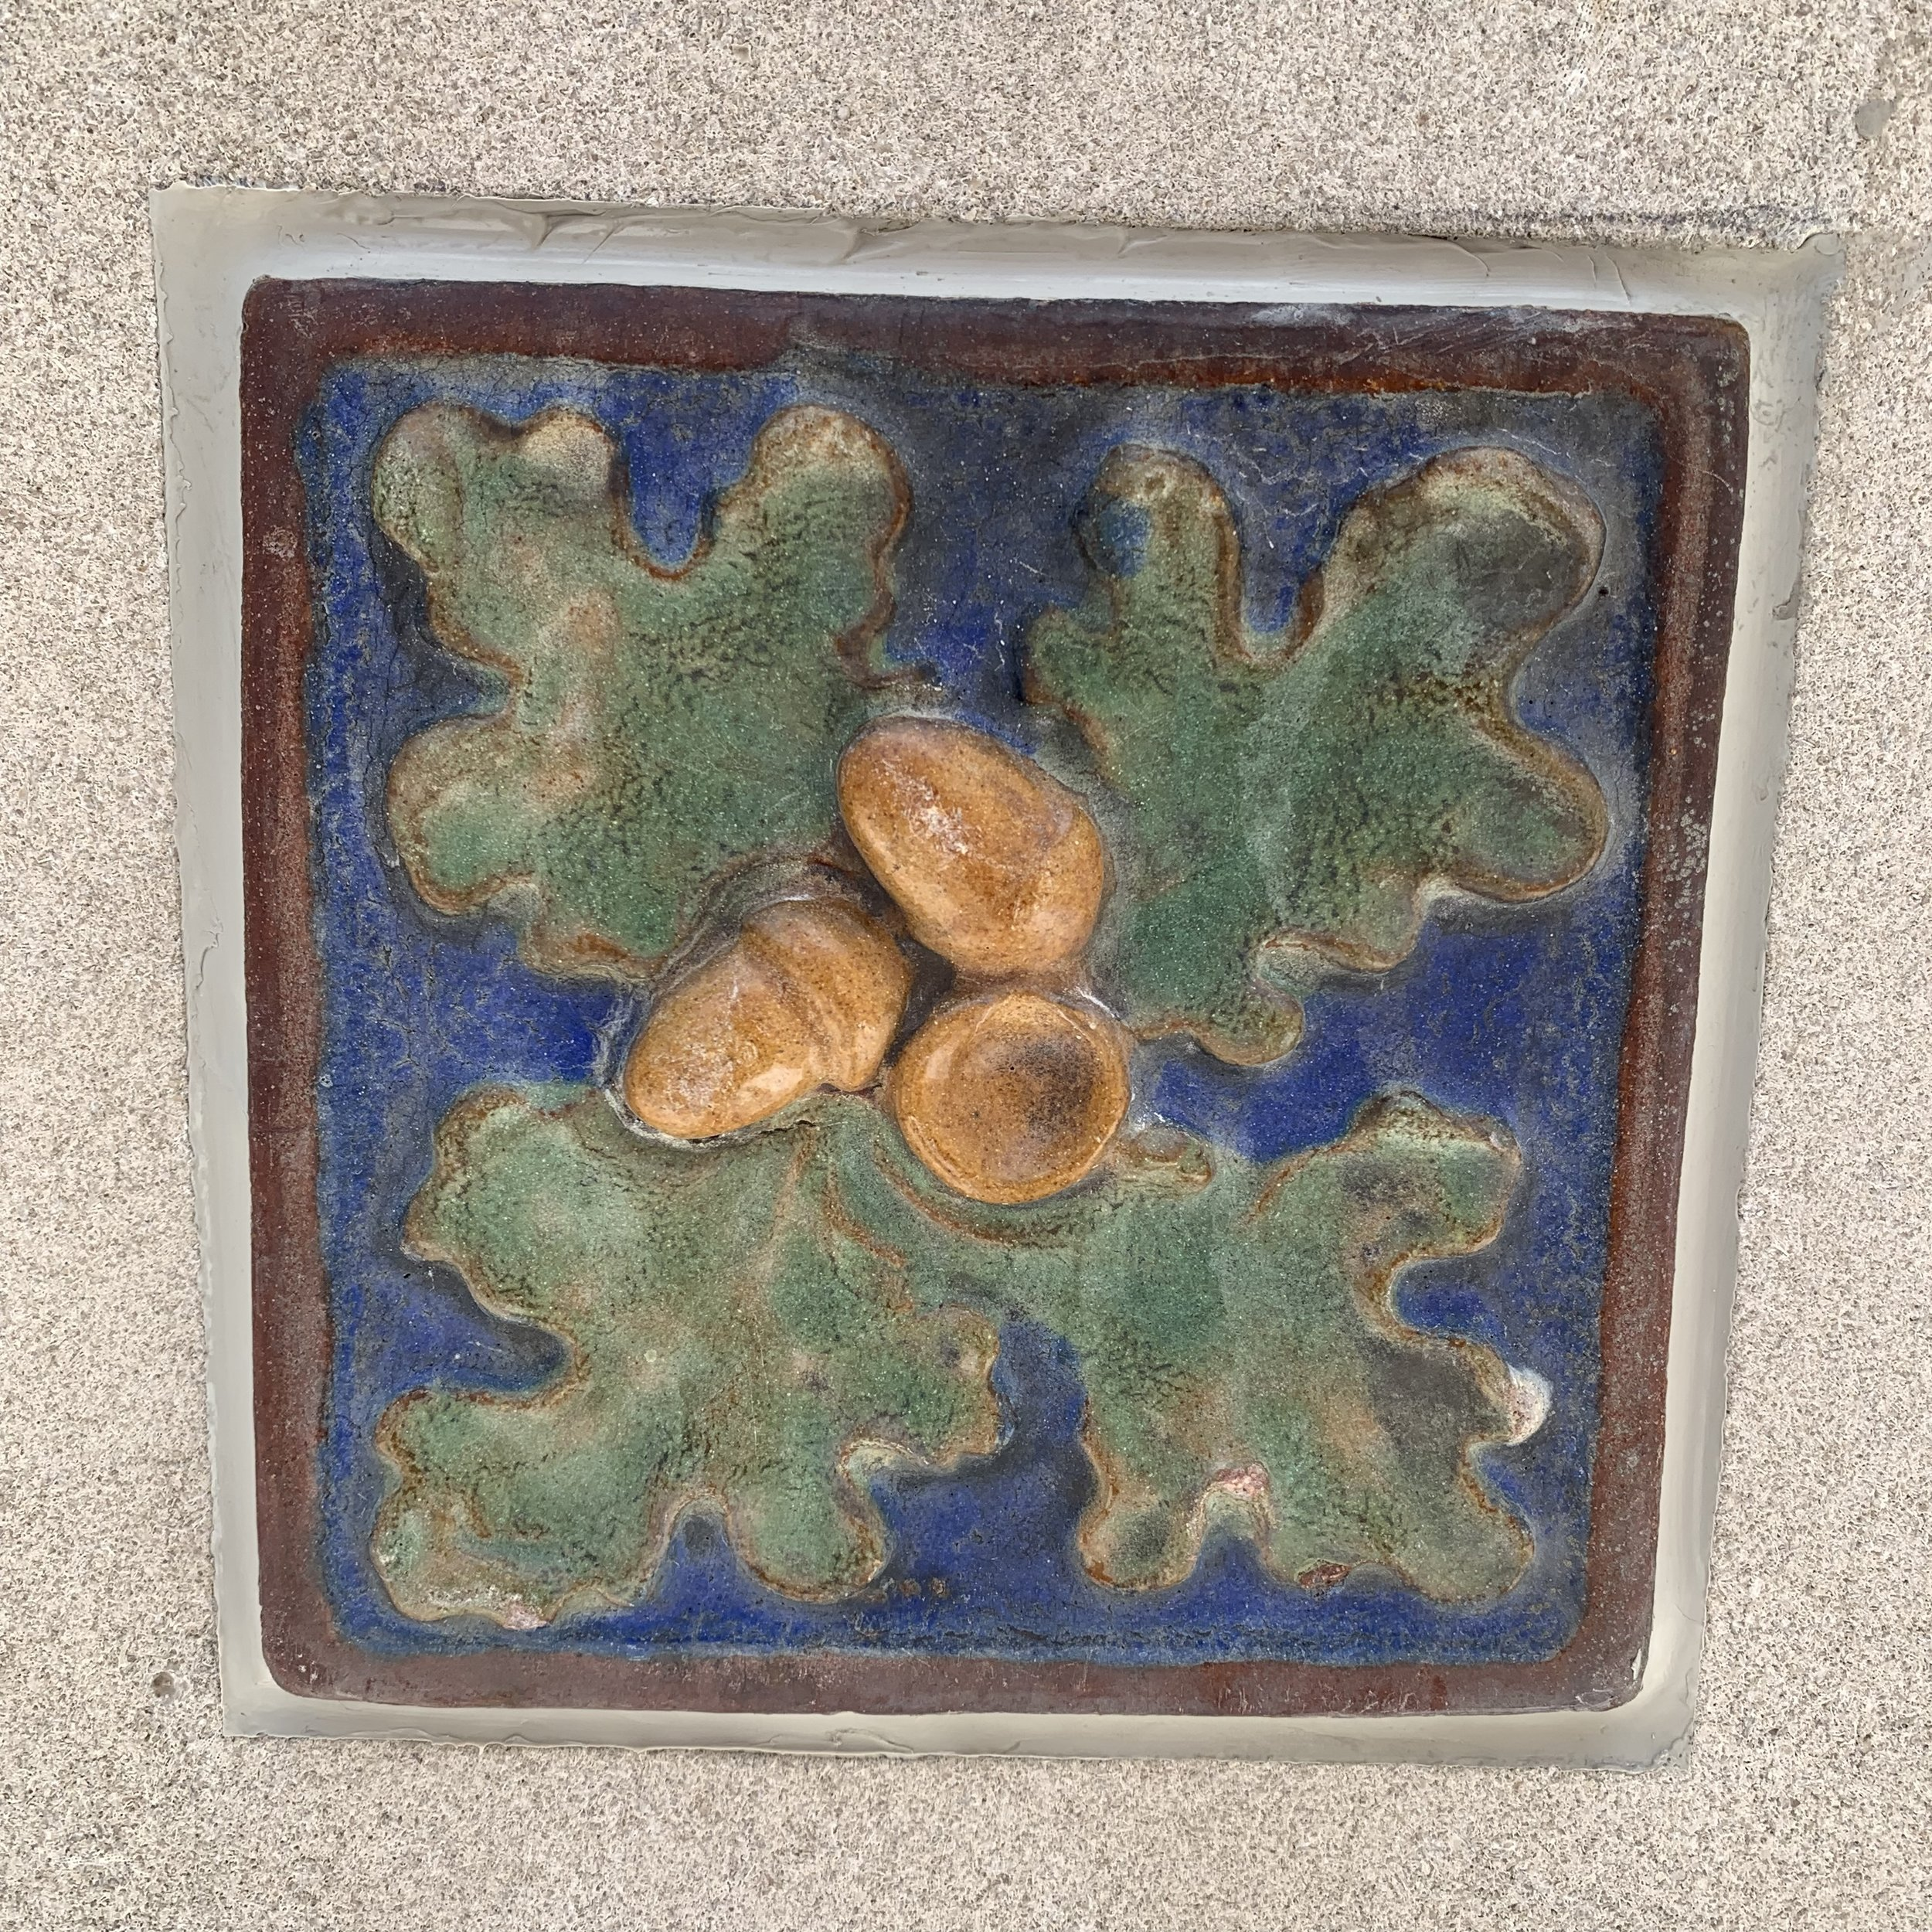 Salvaged tiles from historic Garfield Park planters